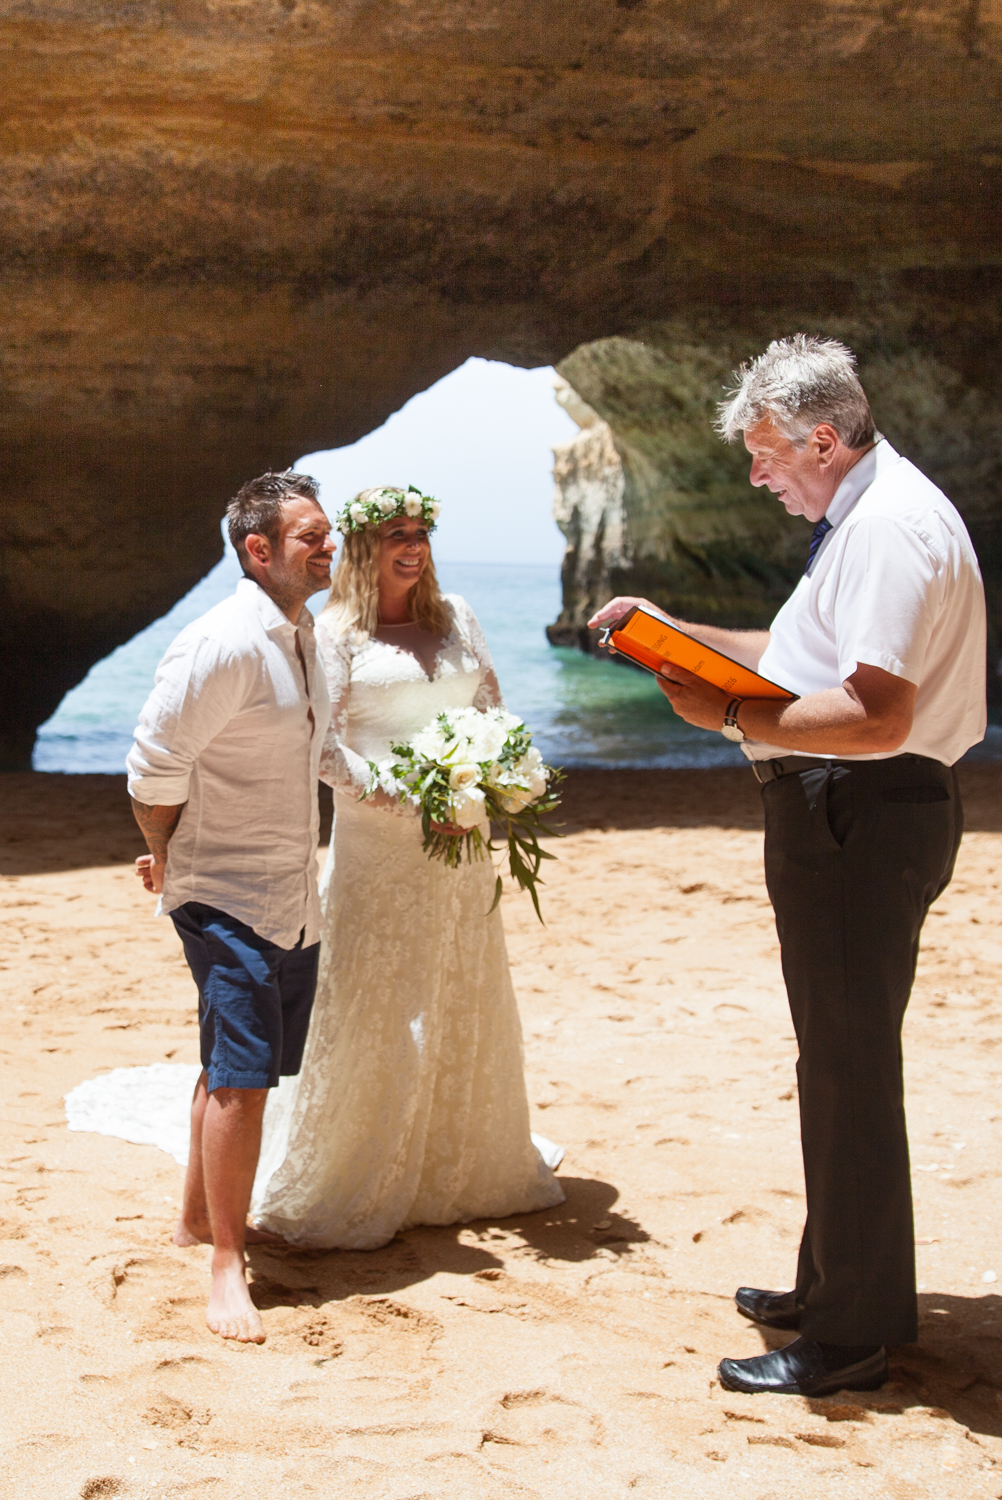 WEDDING_PORTUGAL_NOSOLOAGUA_CAVE_PICTORIAL_BERWICK-2301.jpg